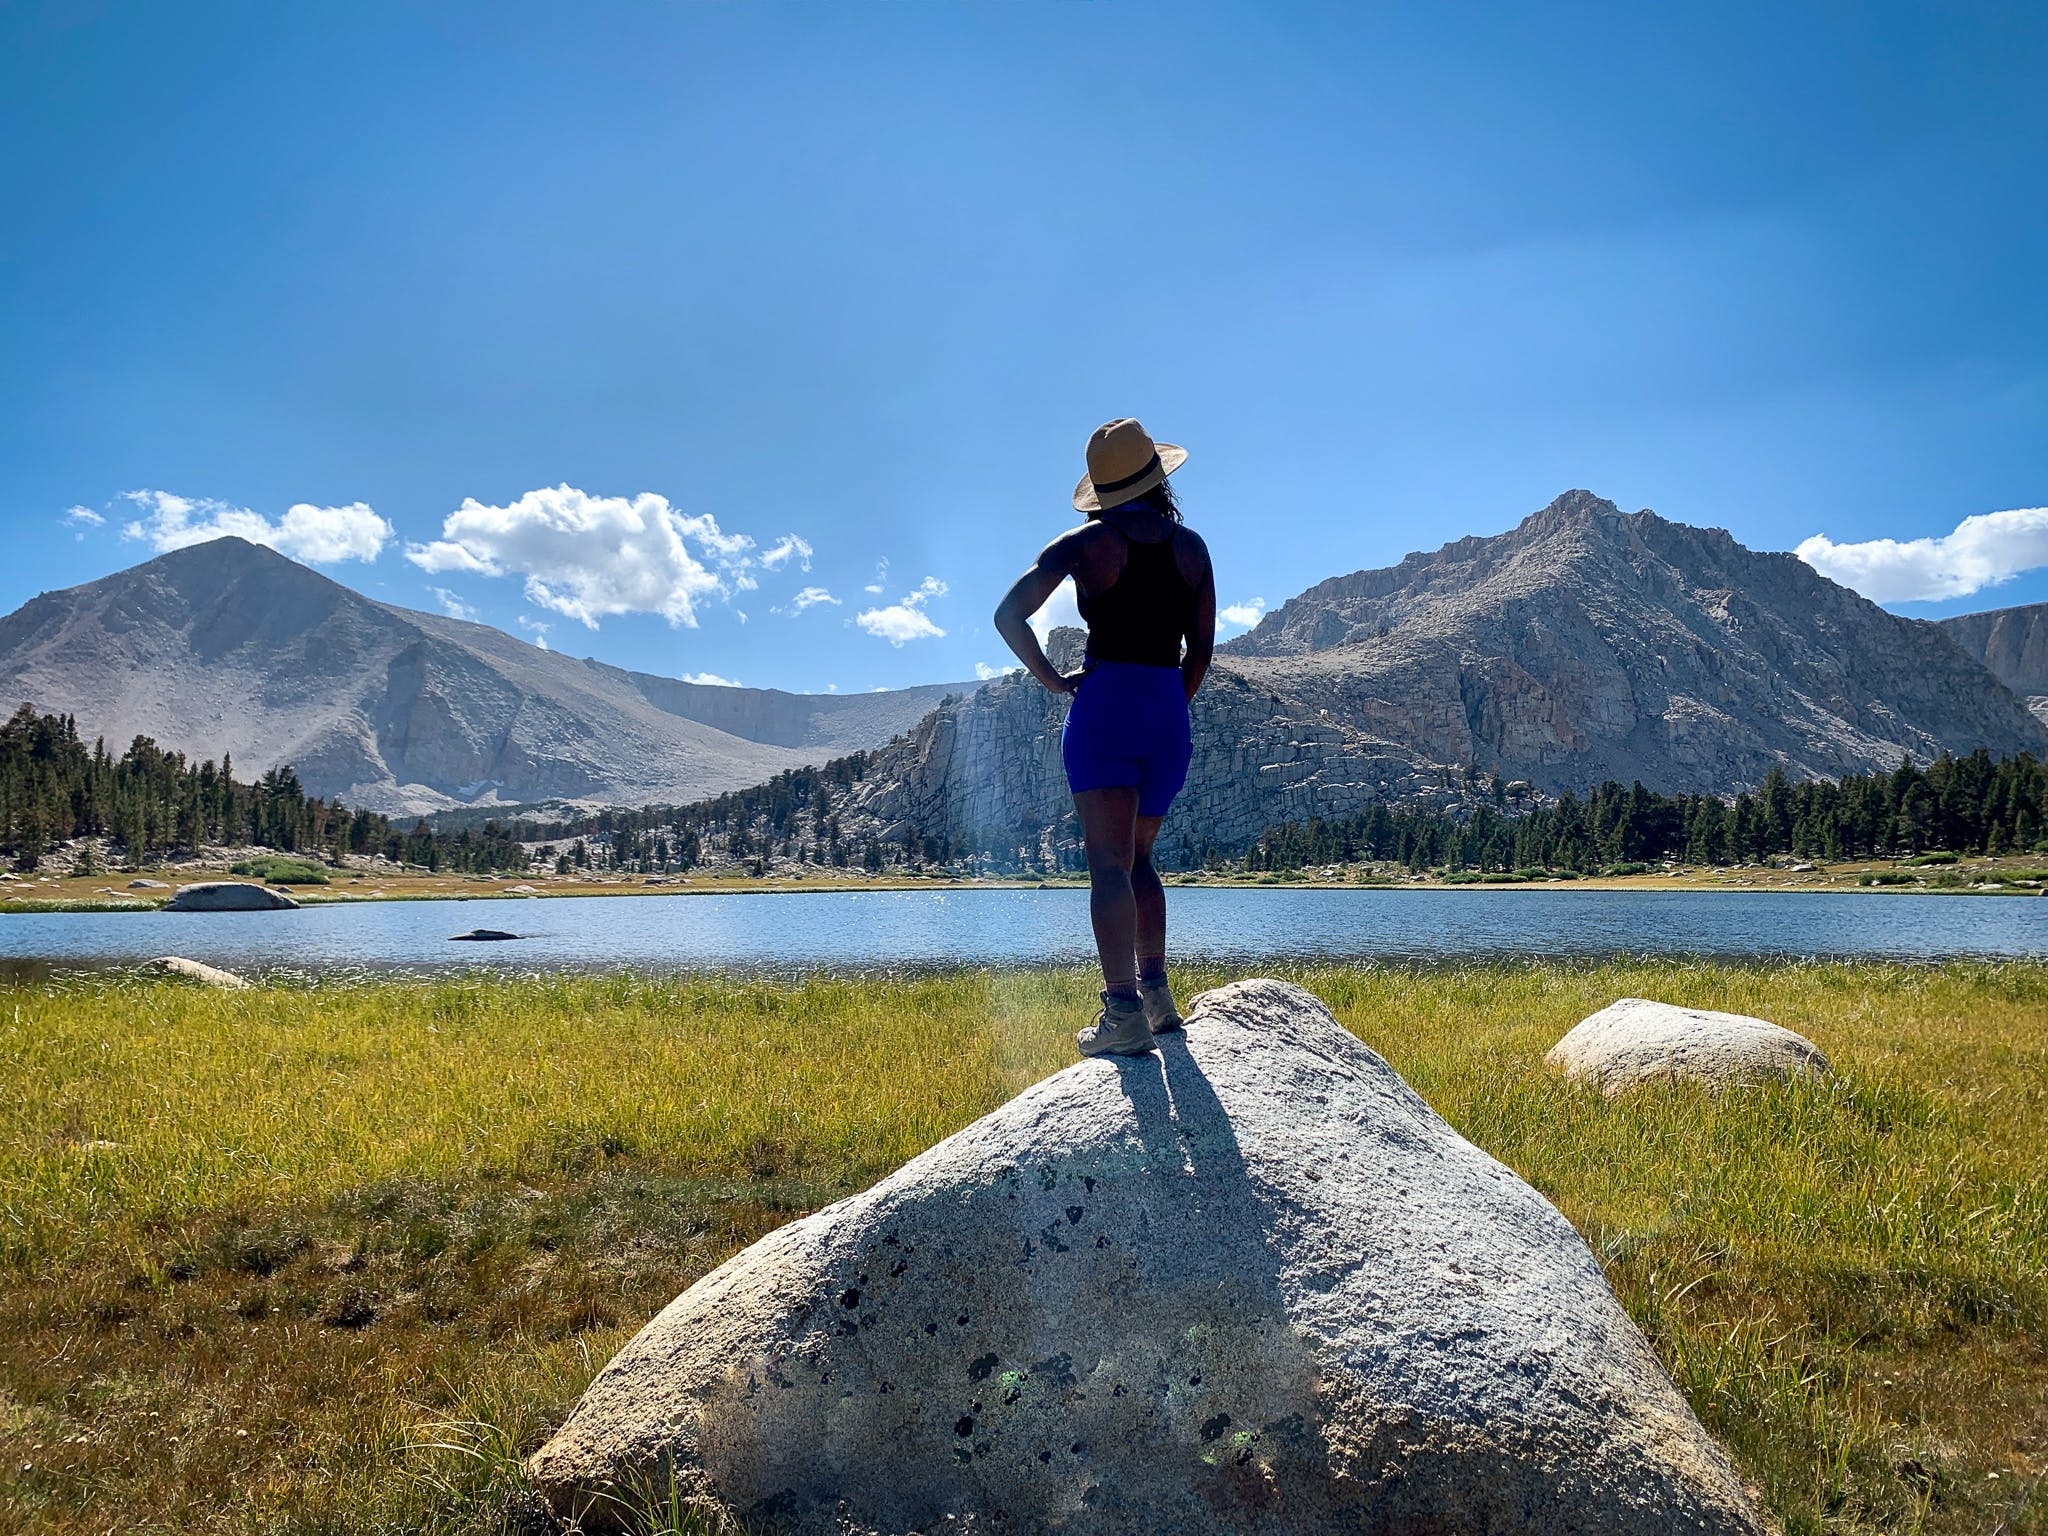 Woman on a large rock overlooking one of the lakes at Cottonwood Lakes in John Muir Wilderness